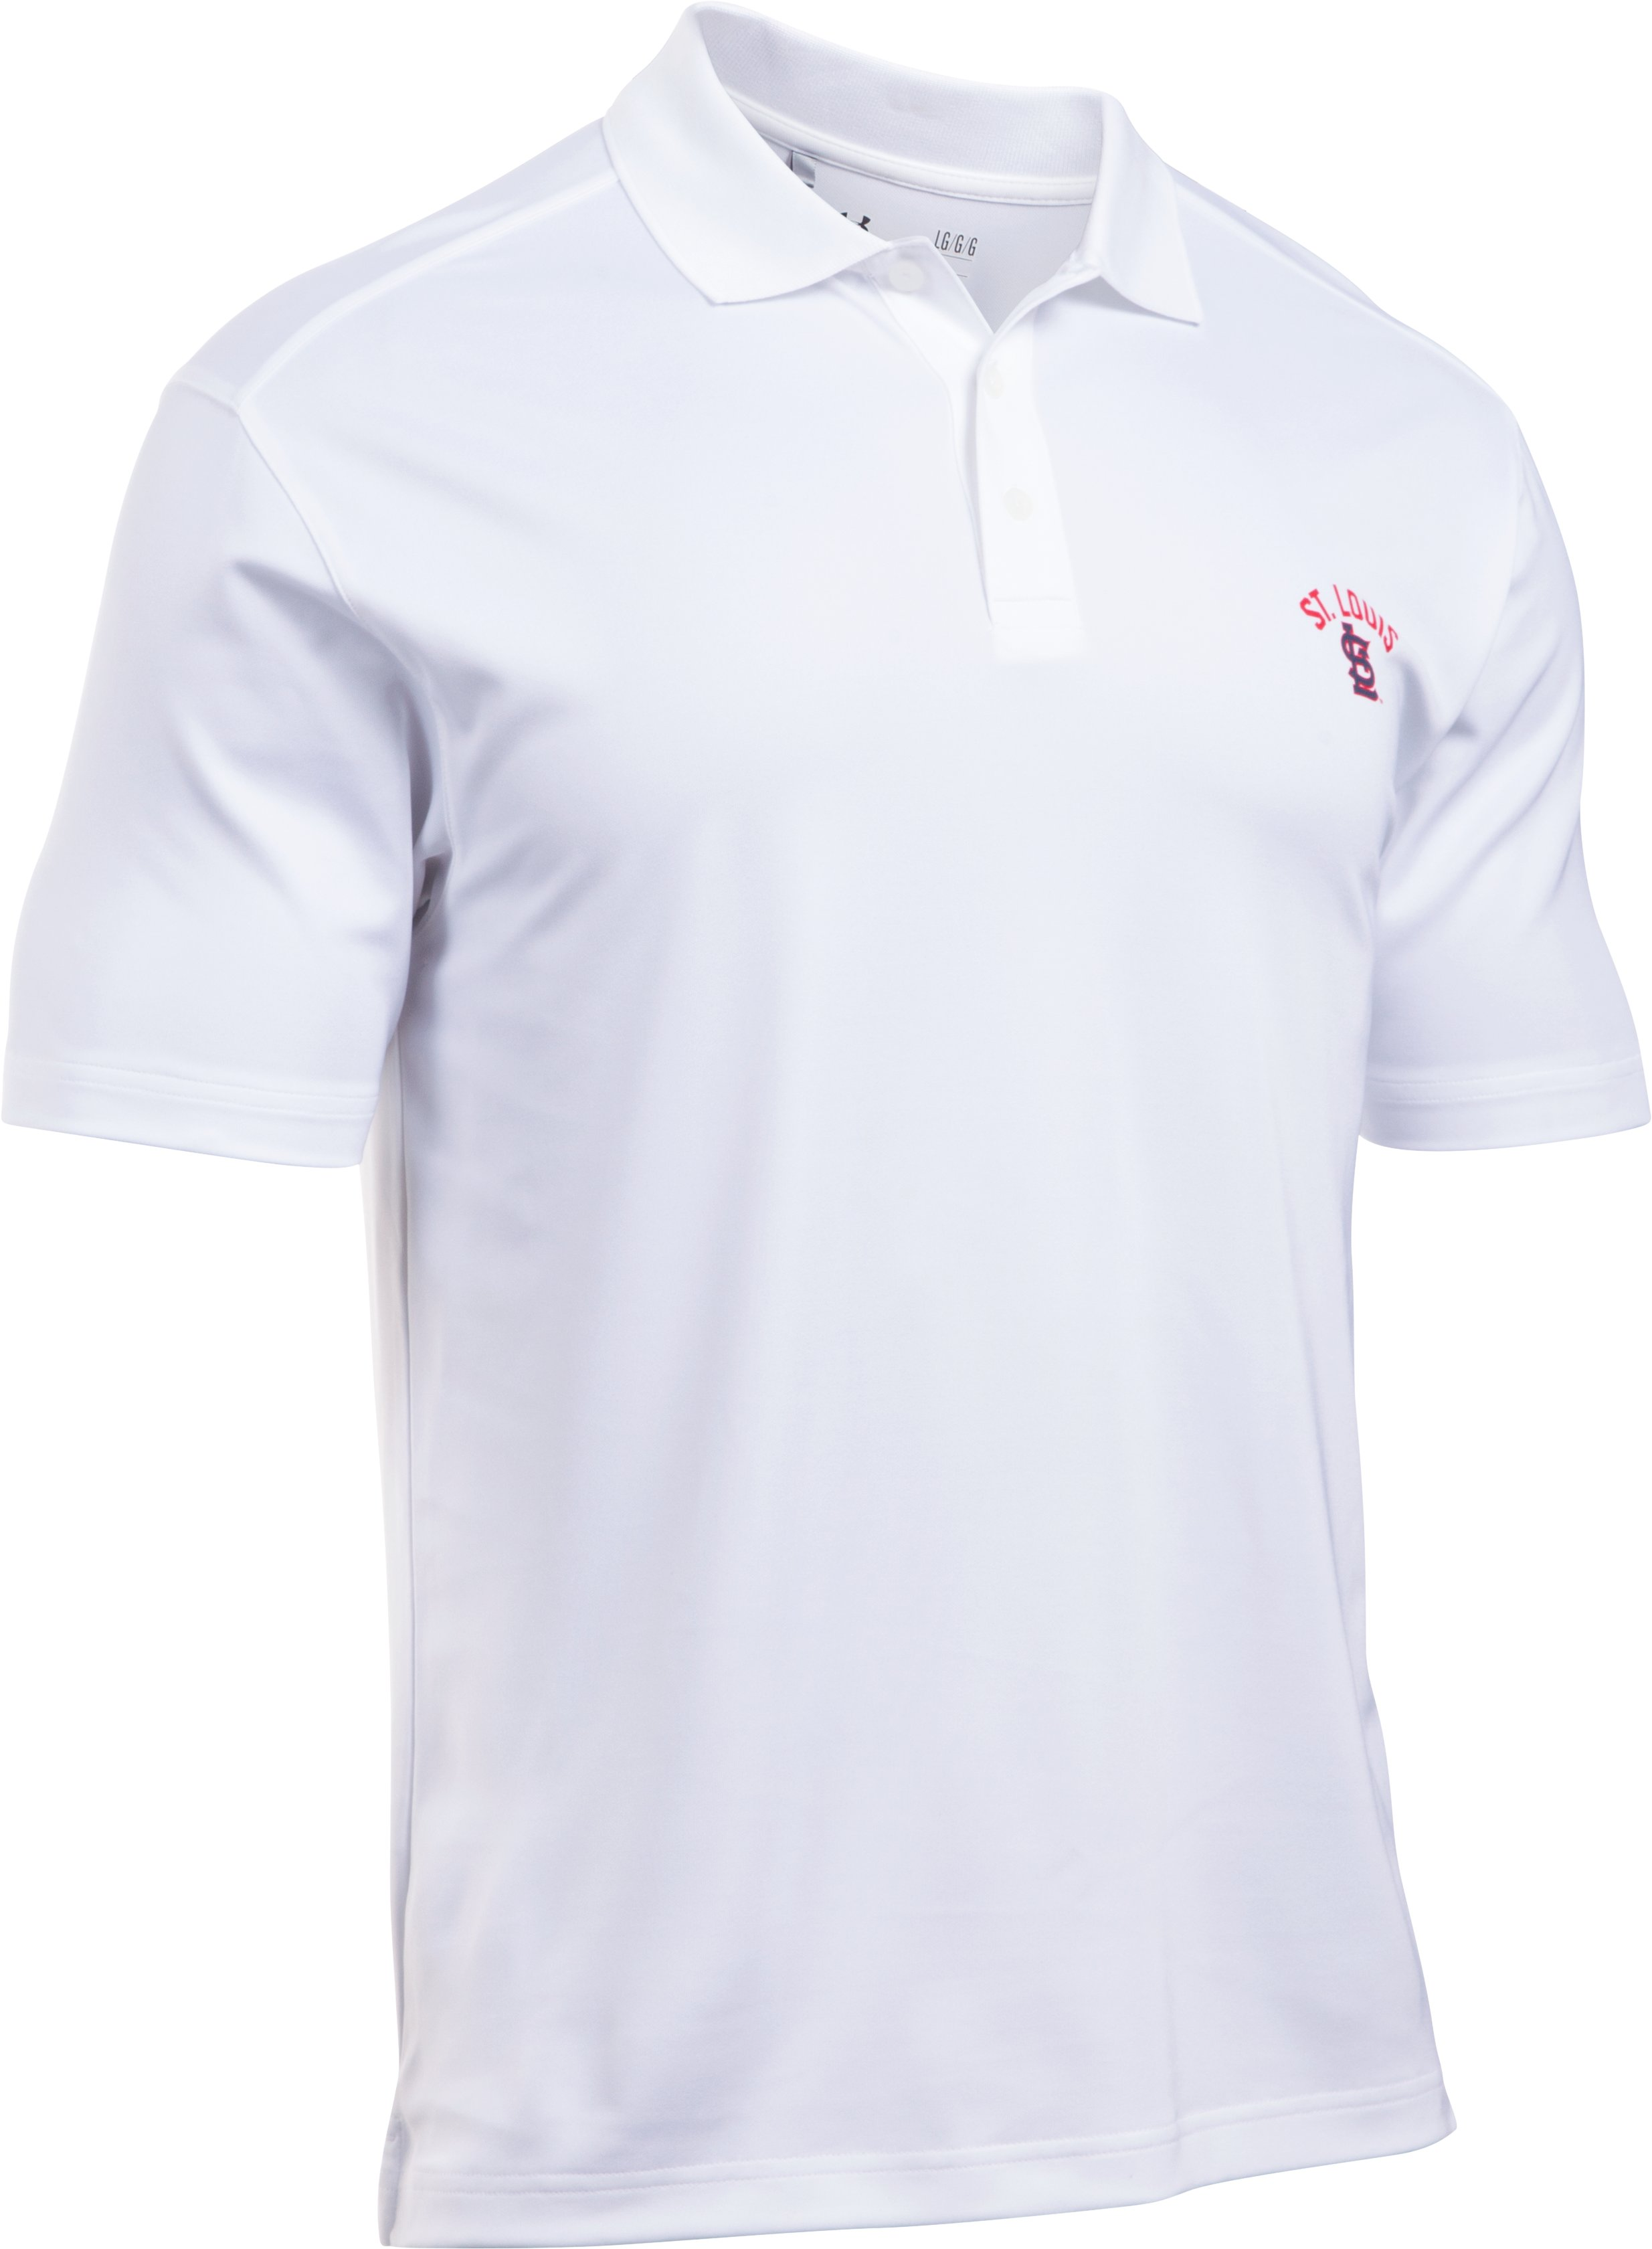 Men's St. Louis Cardinals Performance Polo, White, undefined